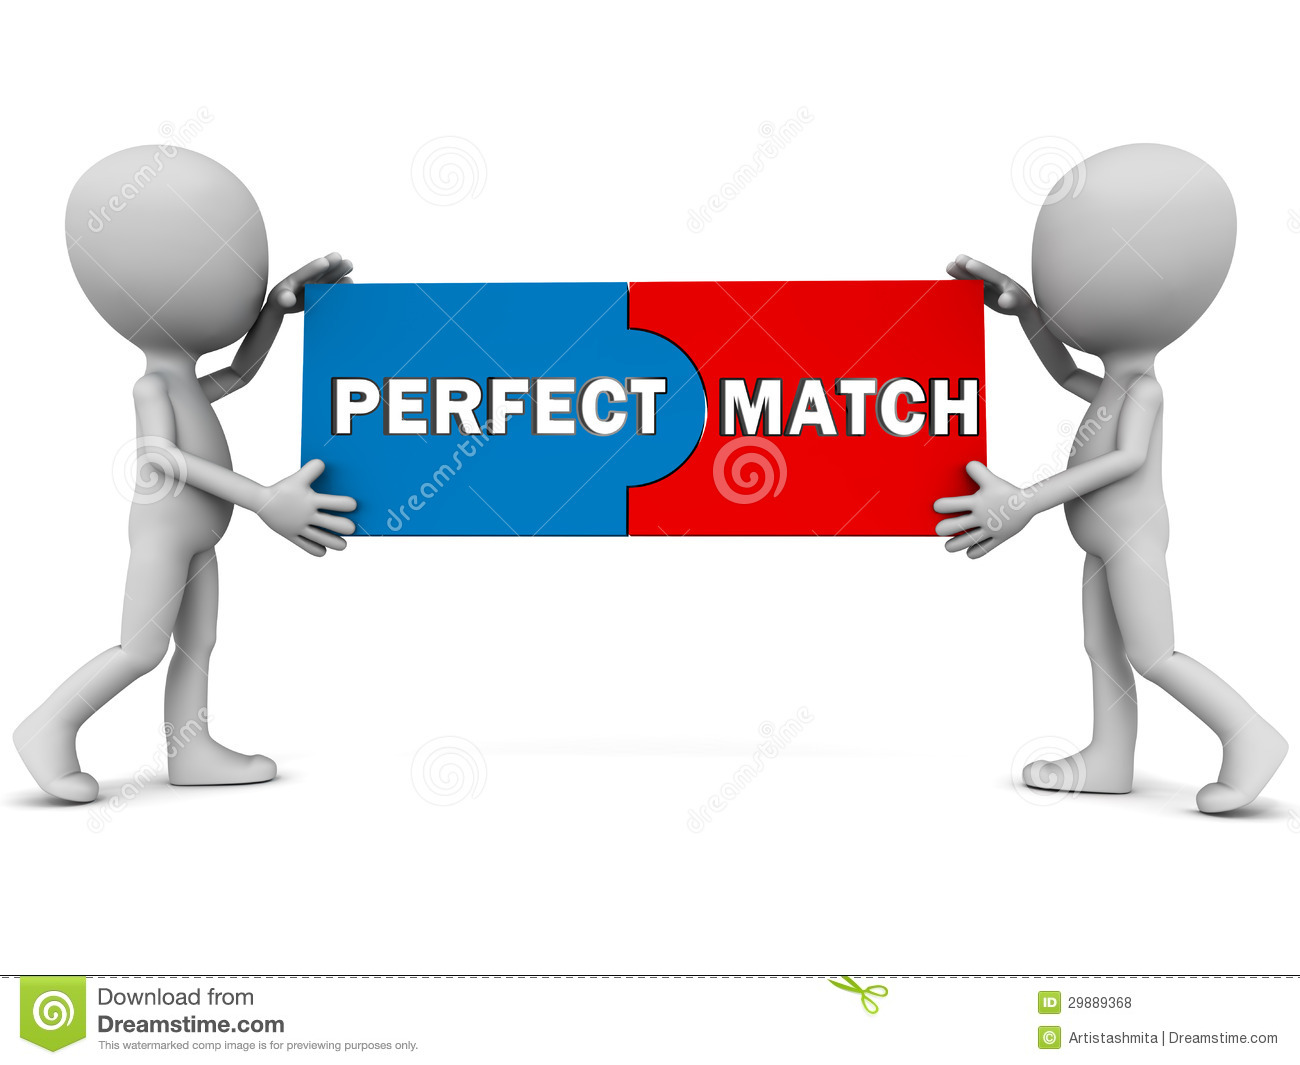 A Flawless Match